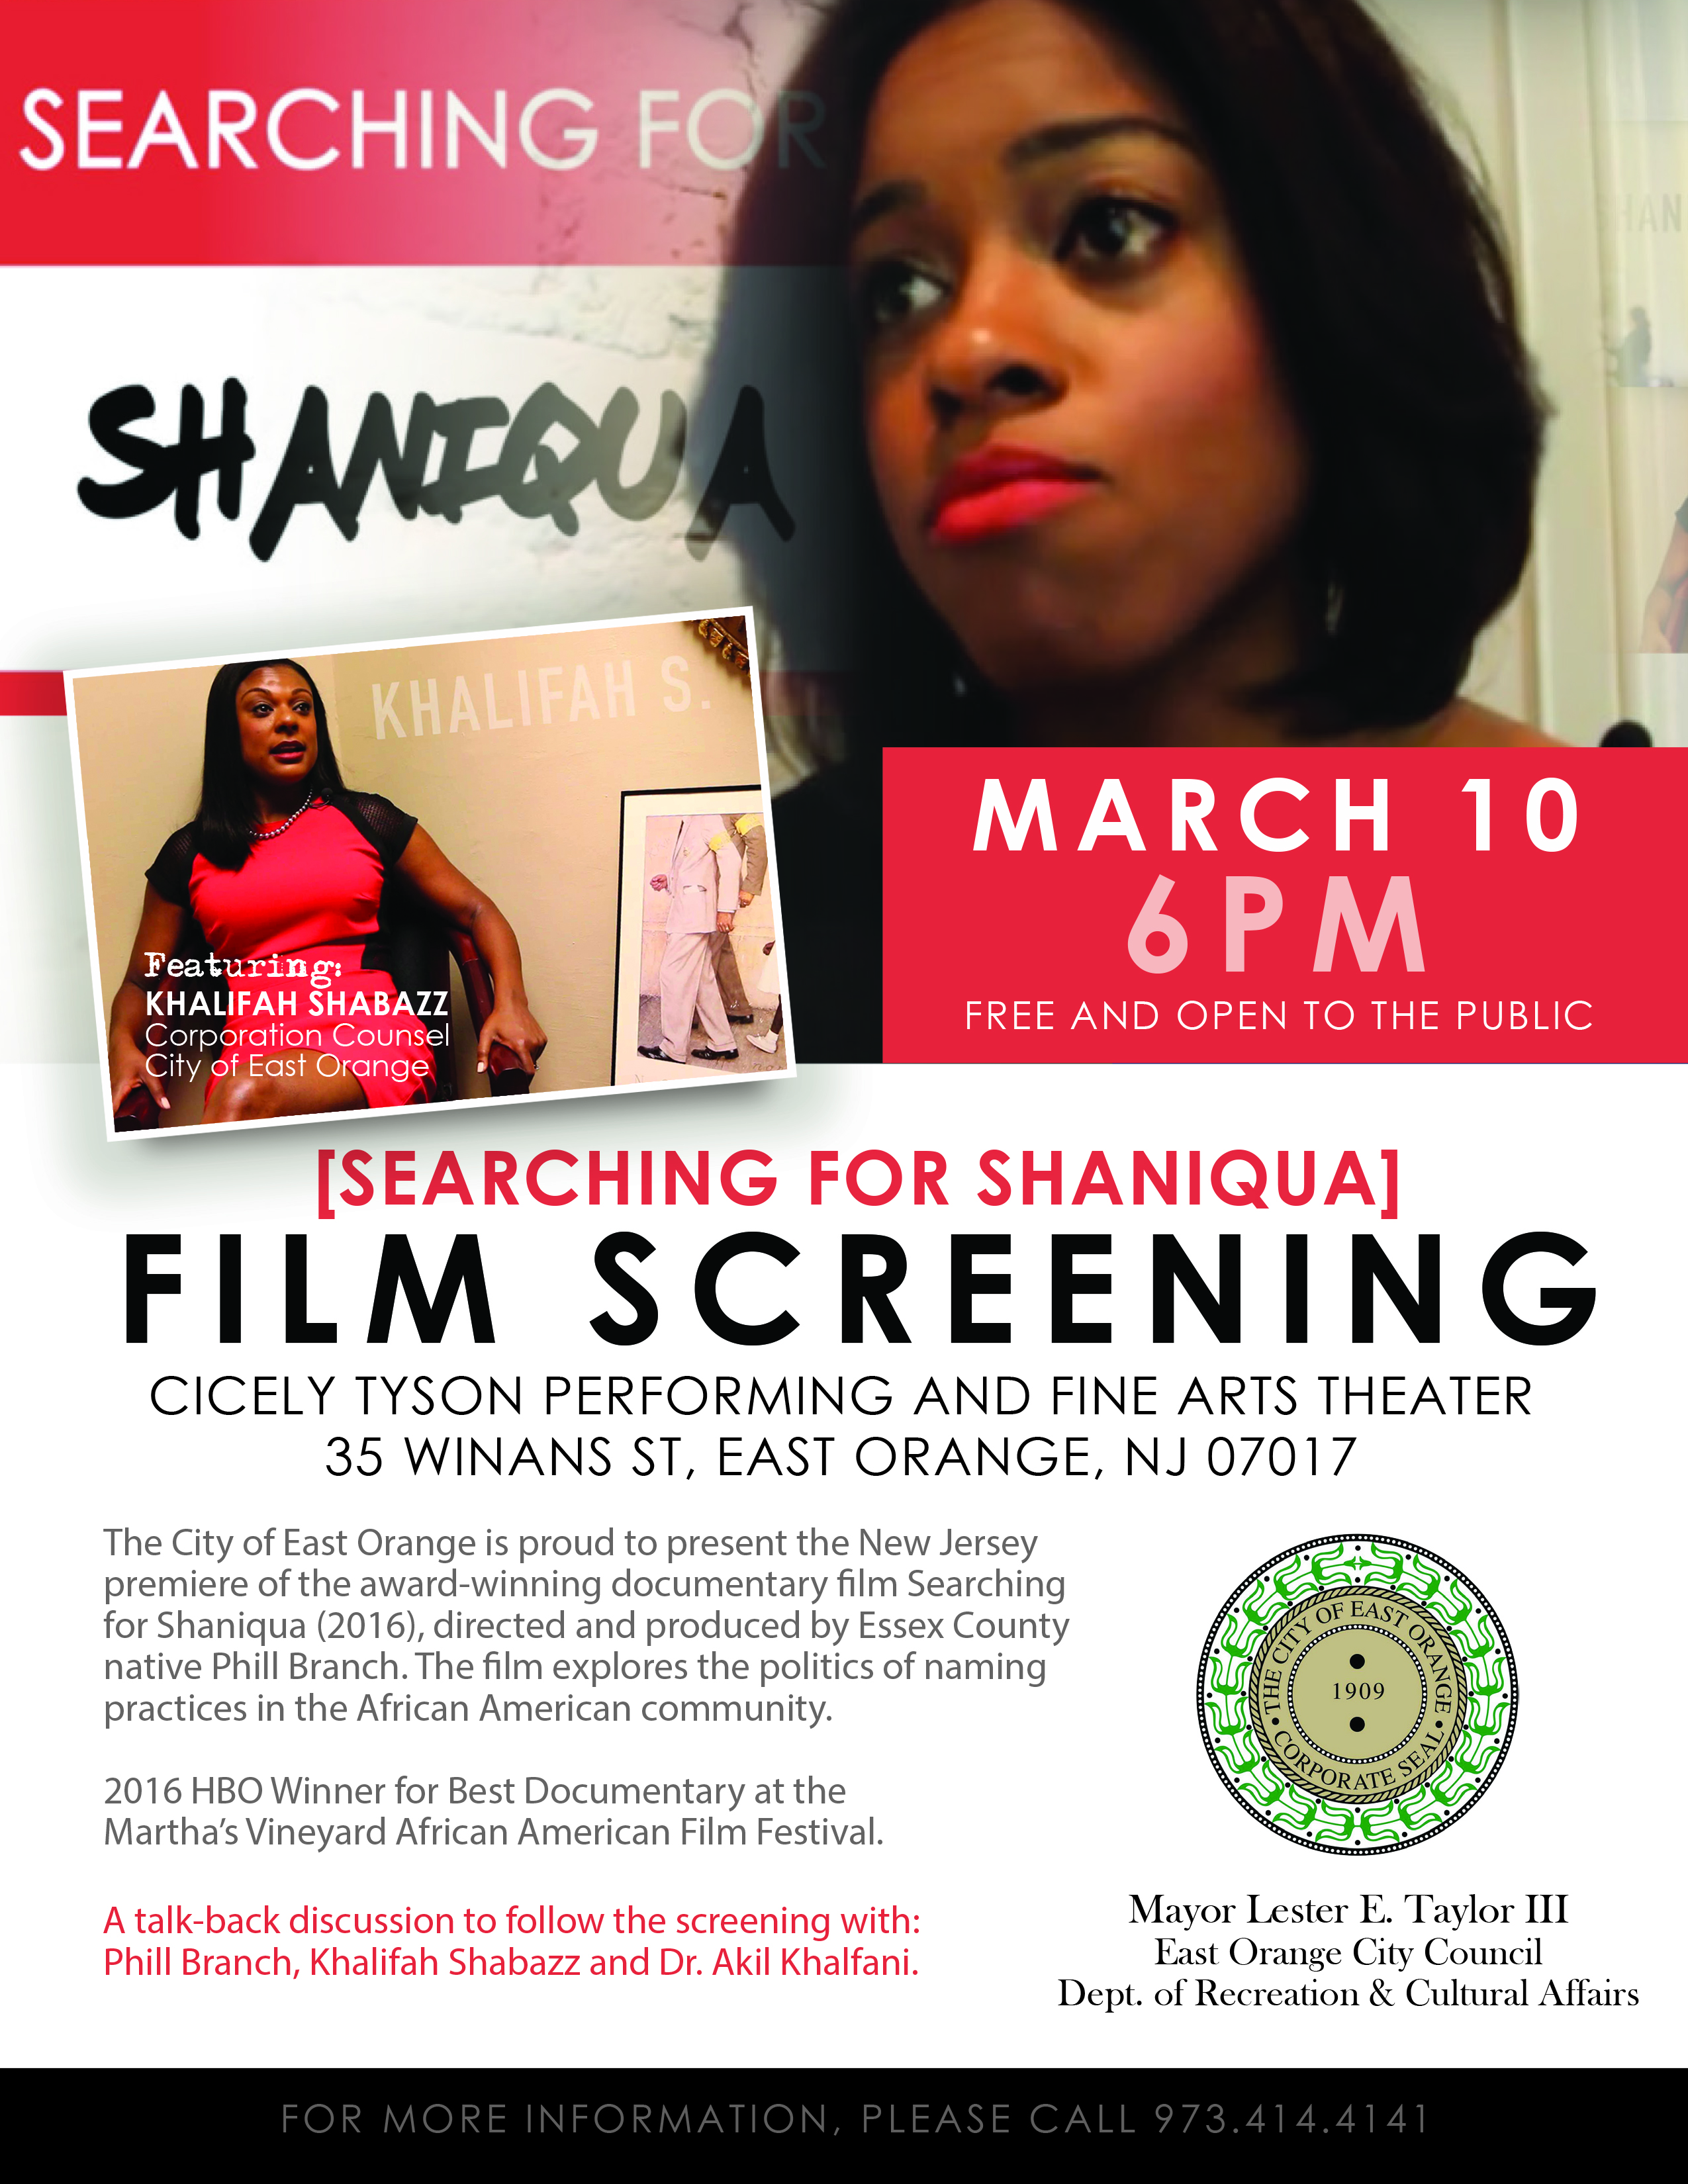 Searching for Shaniqua Makes NJ Film Debut at Cicely Tyson School on Fri, March 10